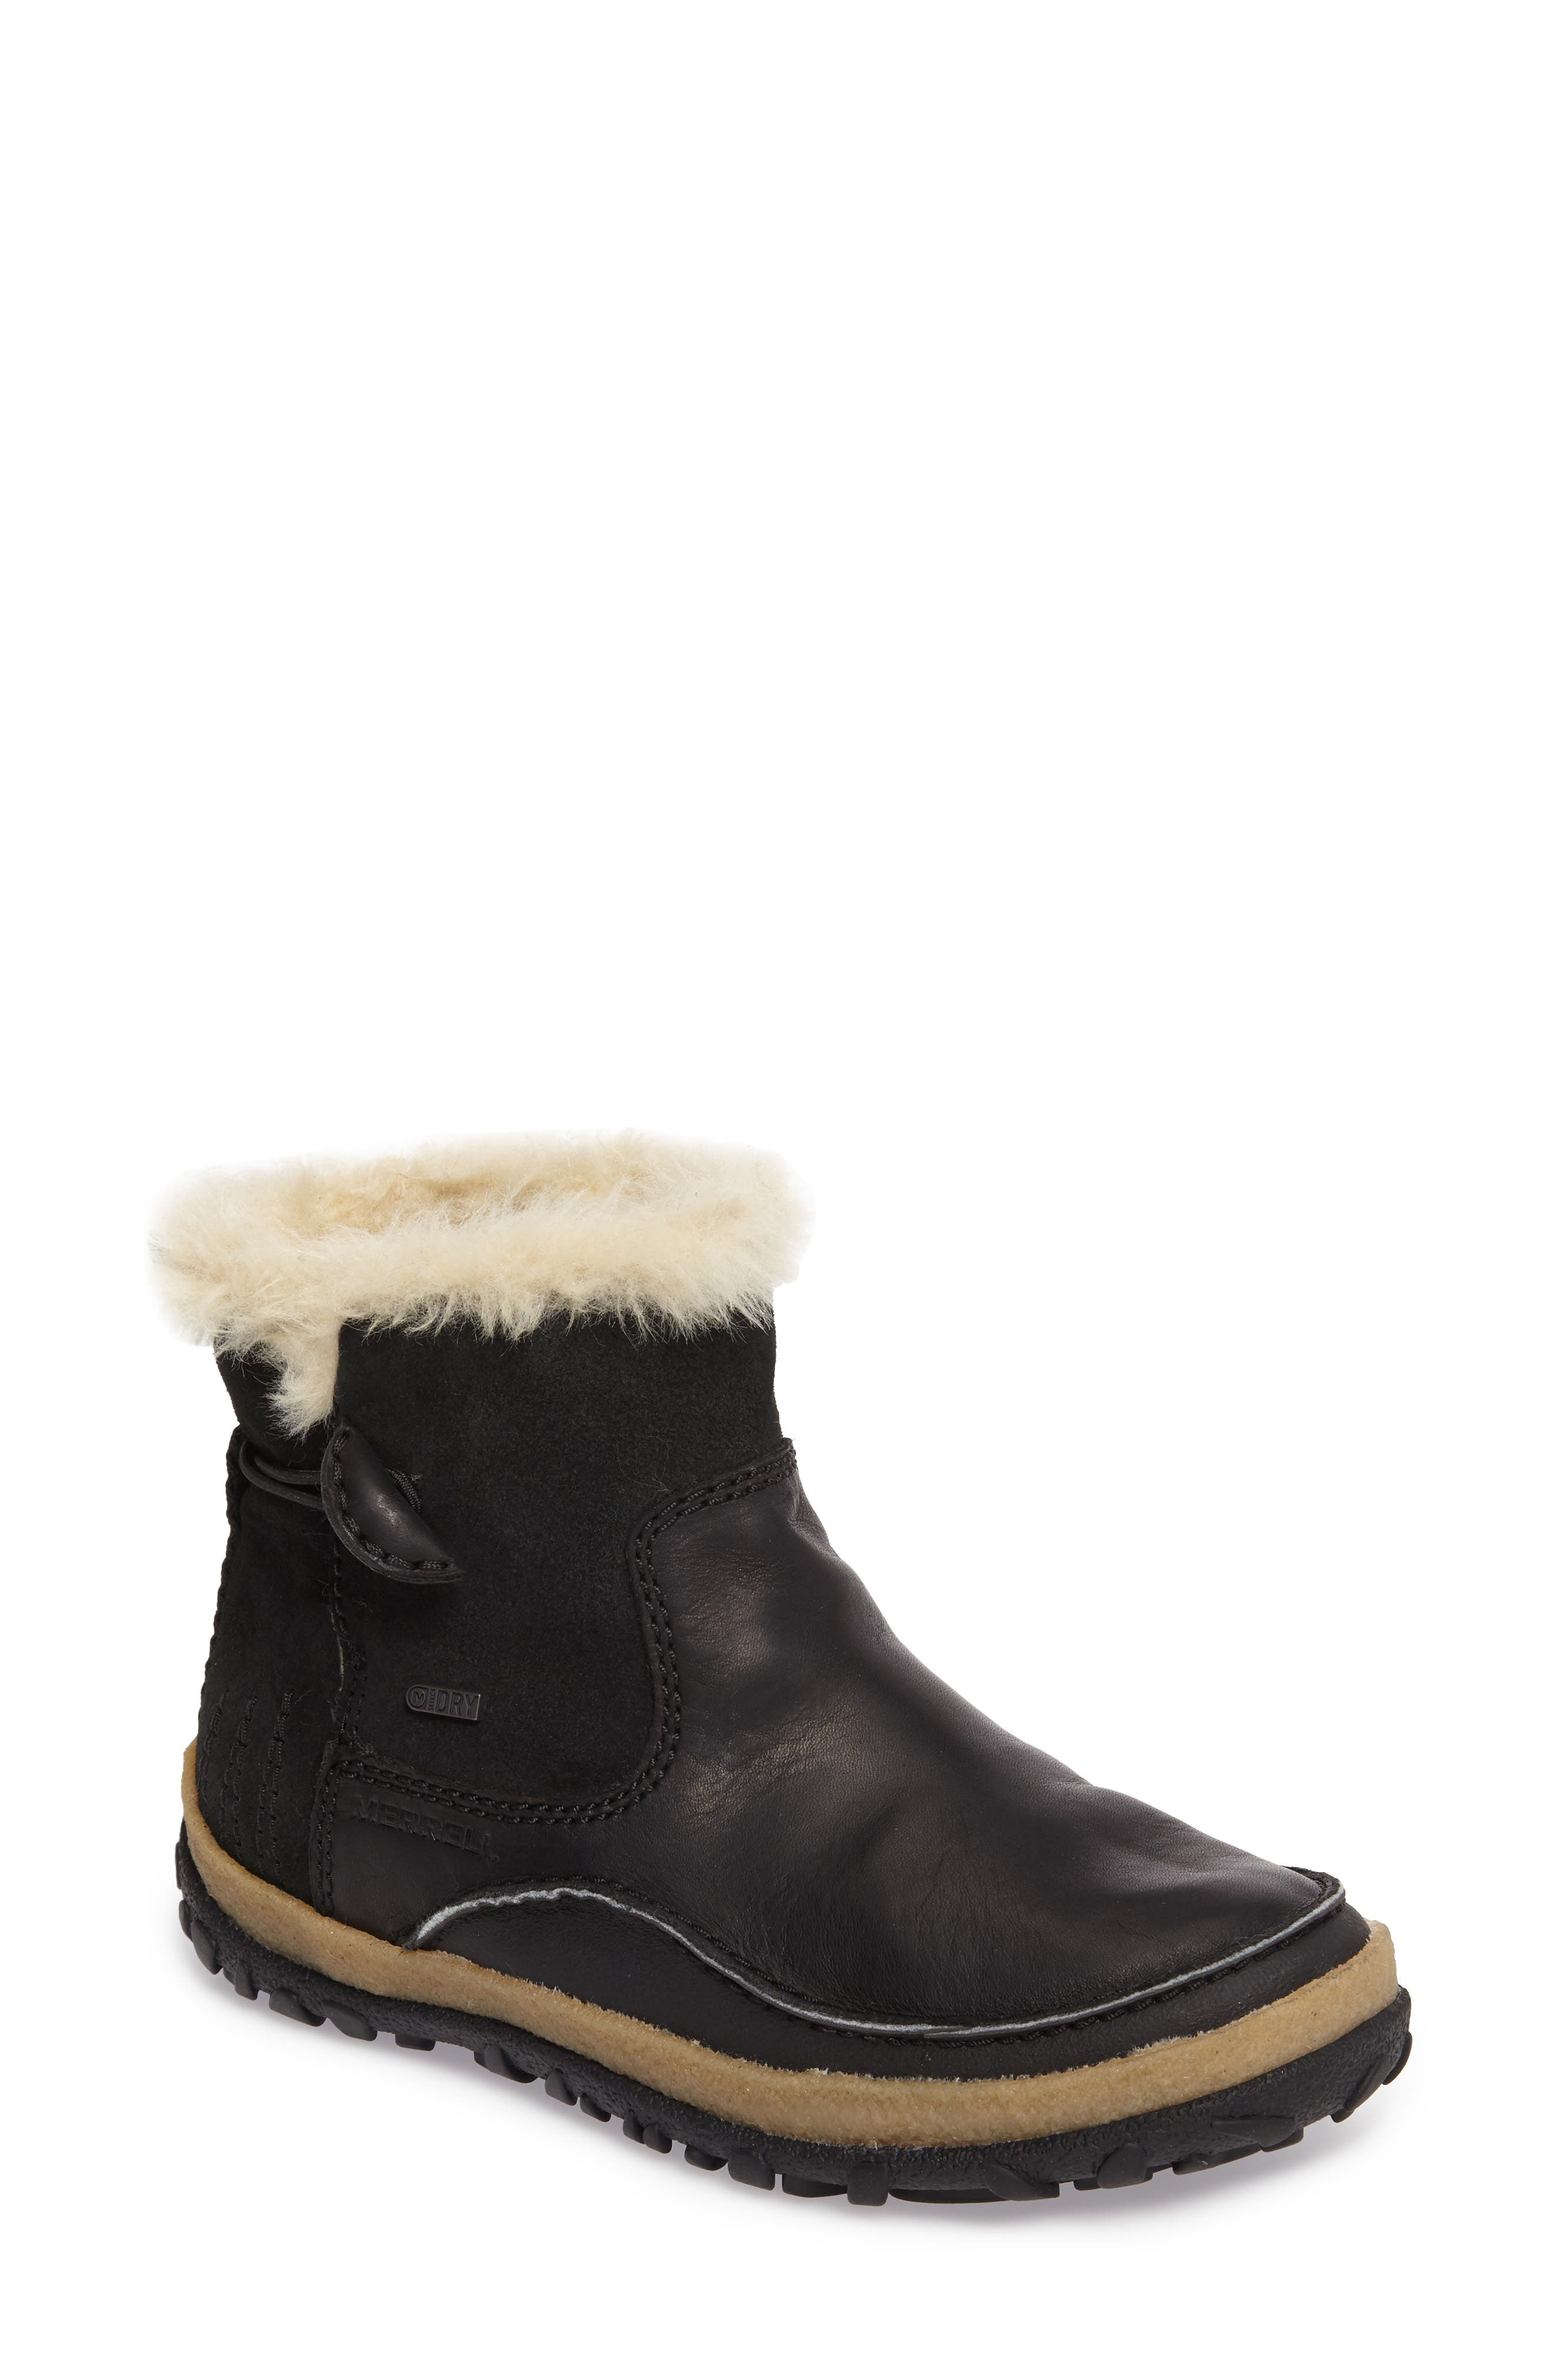 Tremblant Pull-On Polar Waterproof Bootie,                             Main thumbnail 1, color,                             001